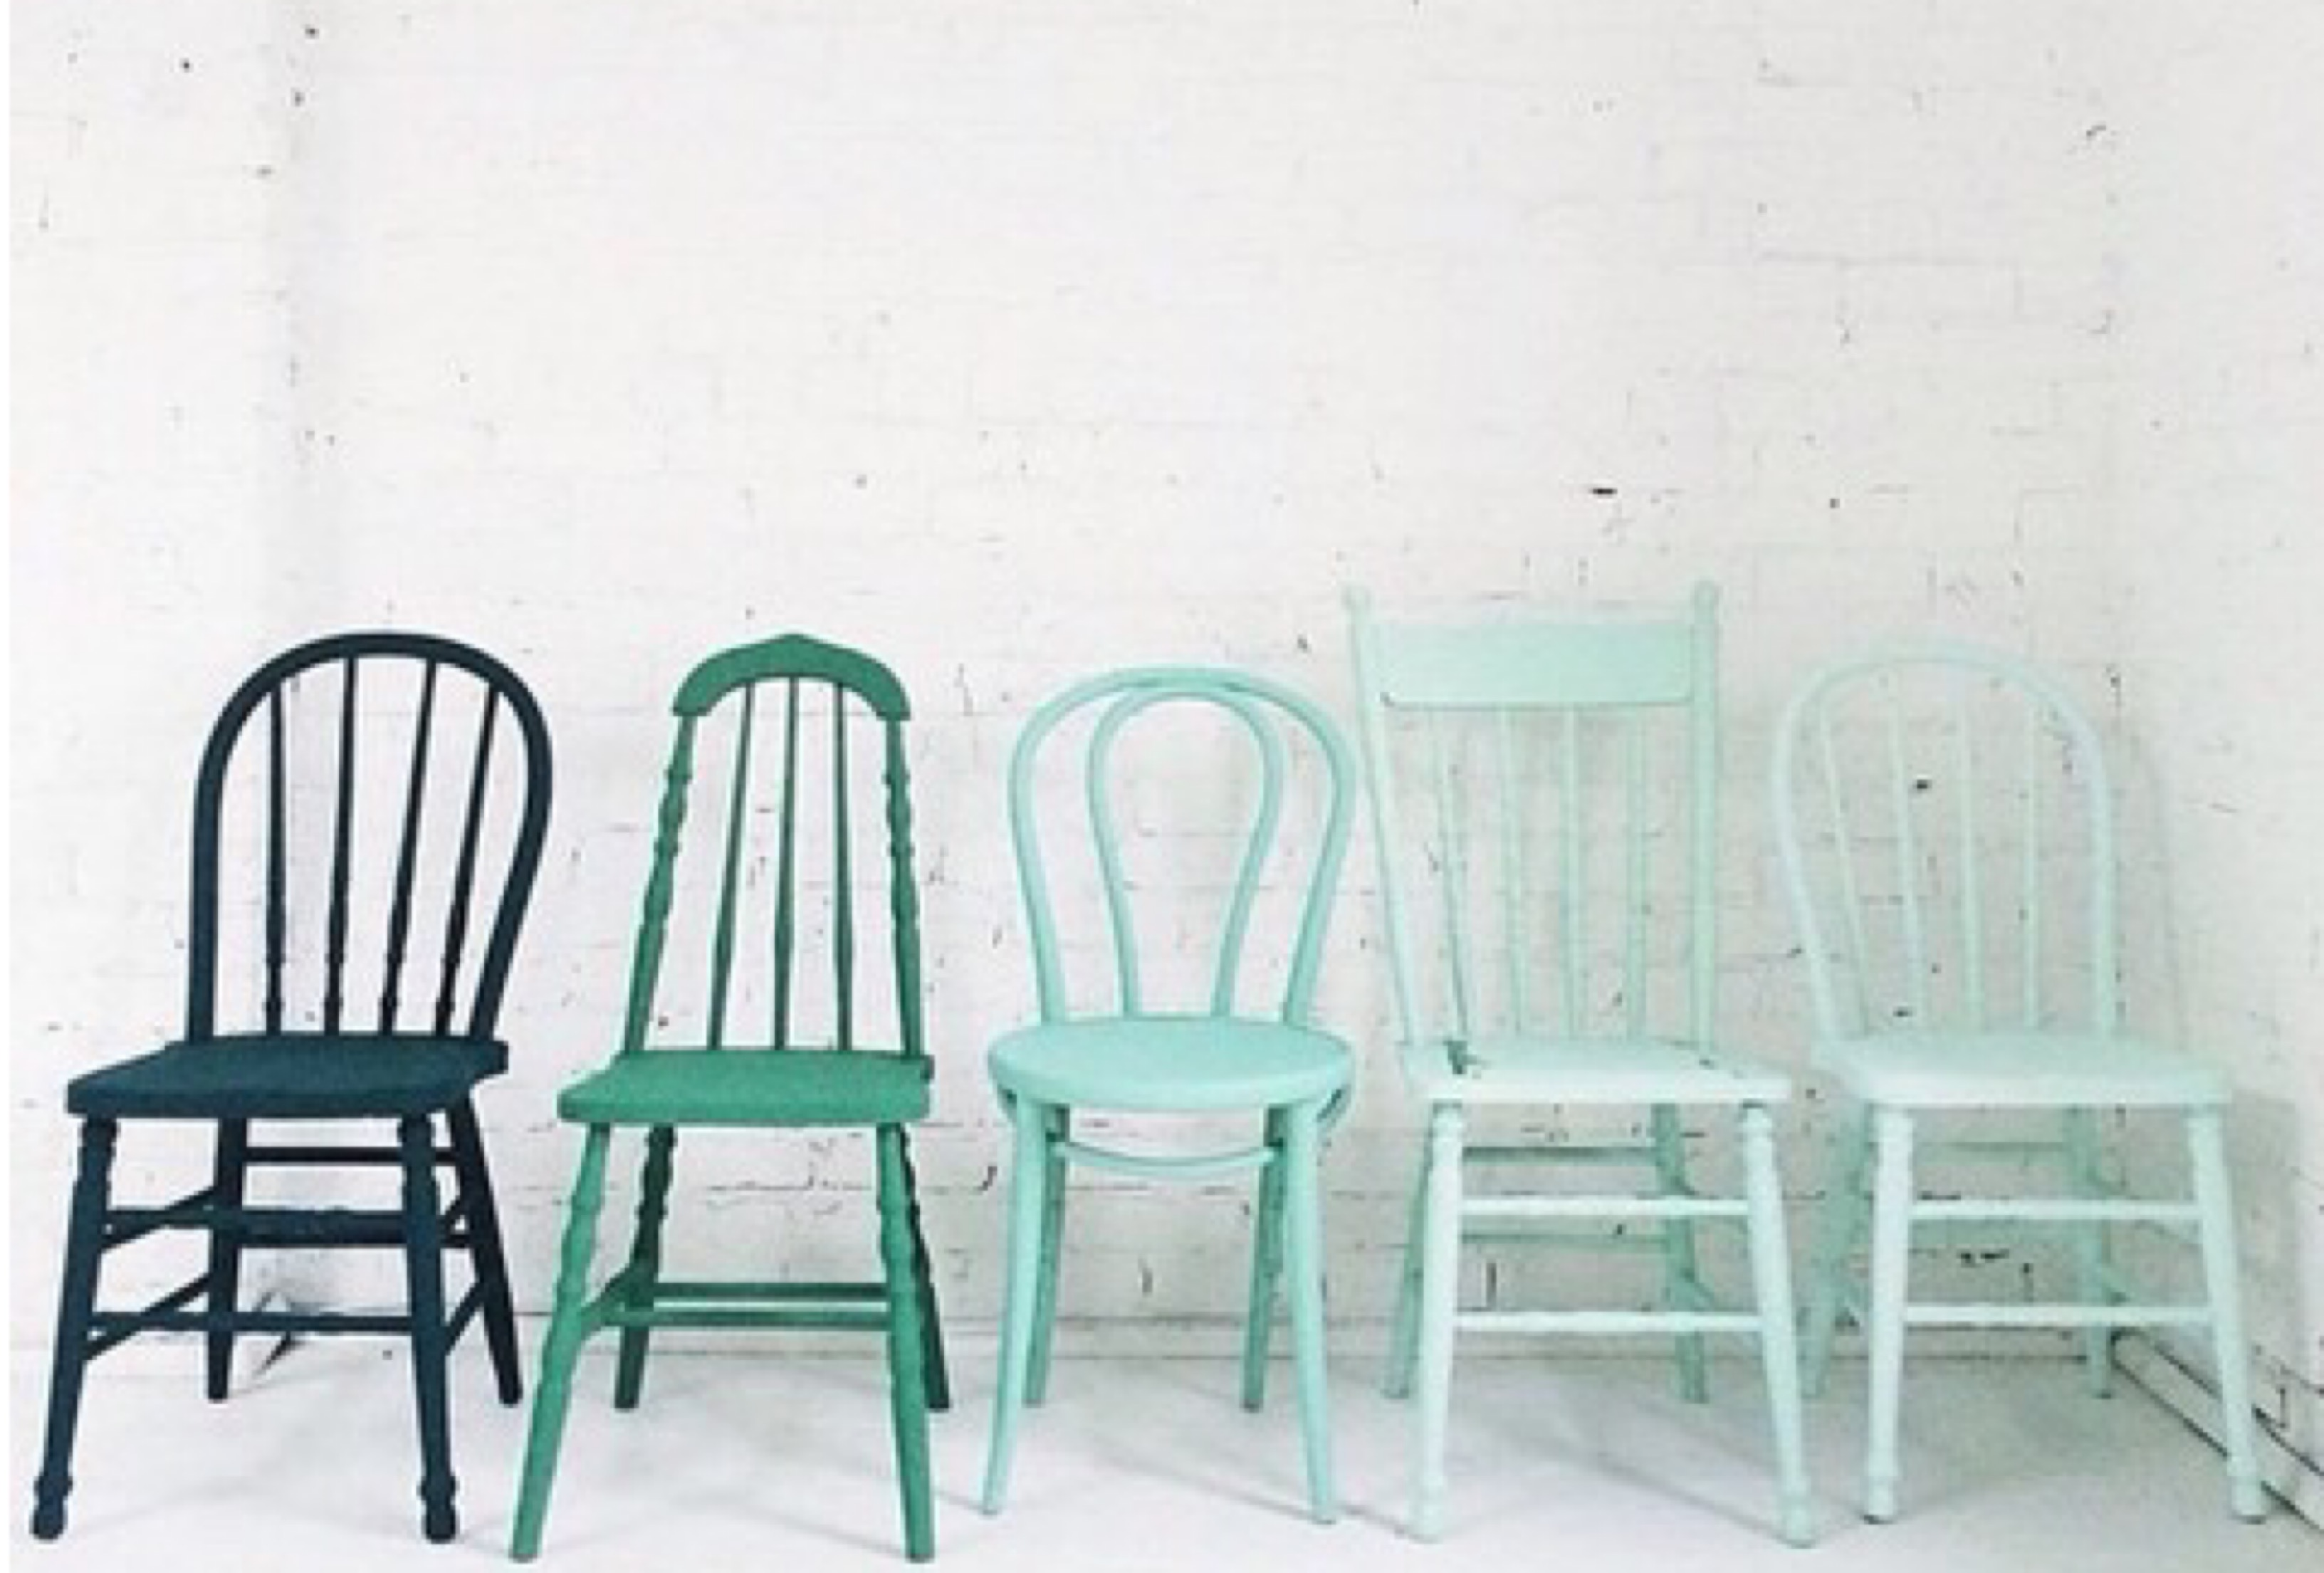 diy painted windsor chairs green upholstered chair chalk tabella talks as a project it is loads of fun going from various antique shops street fairs and estate sales to find the right mix